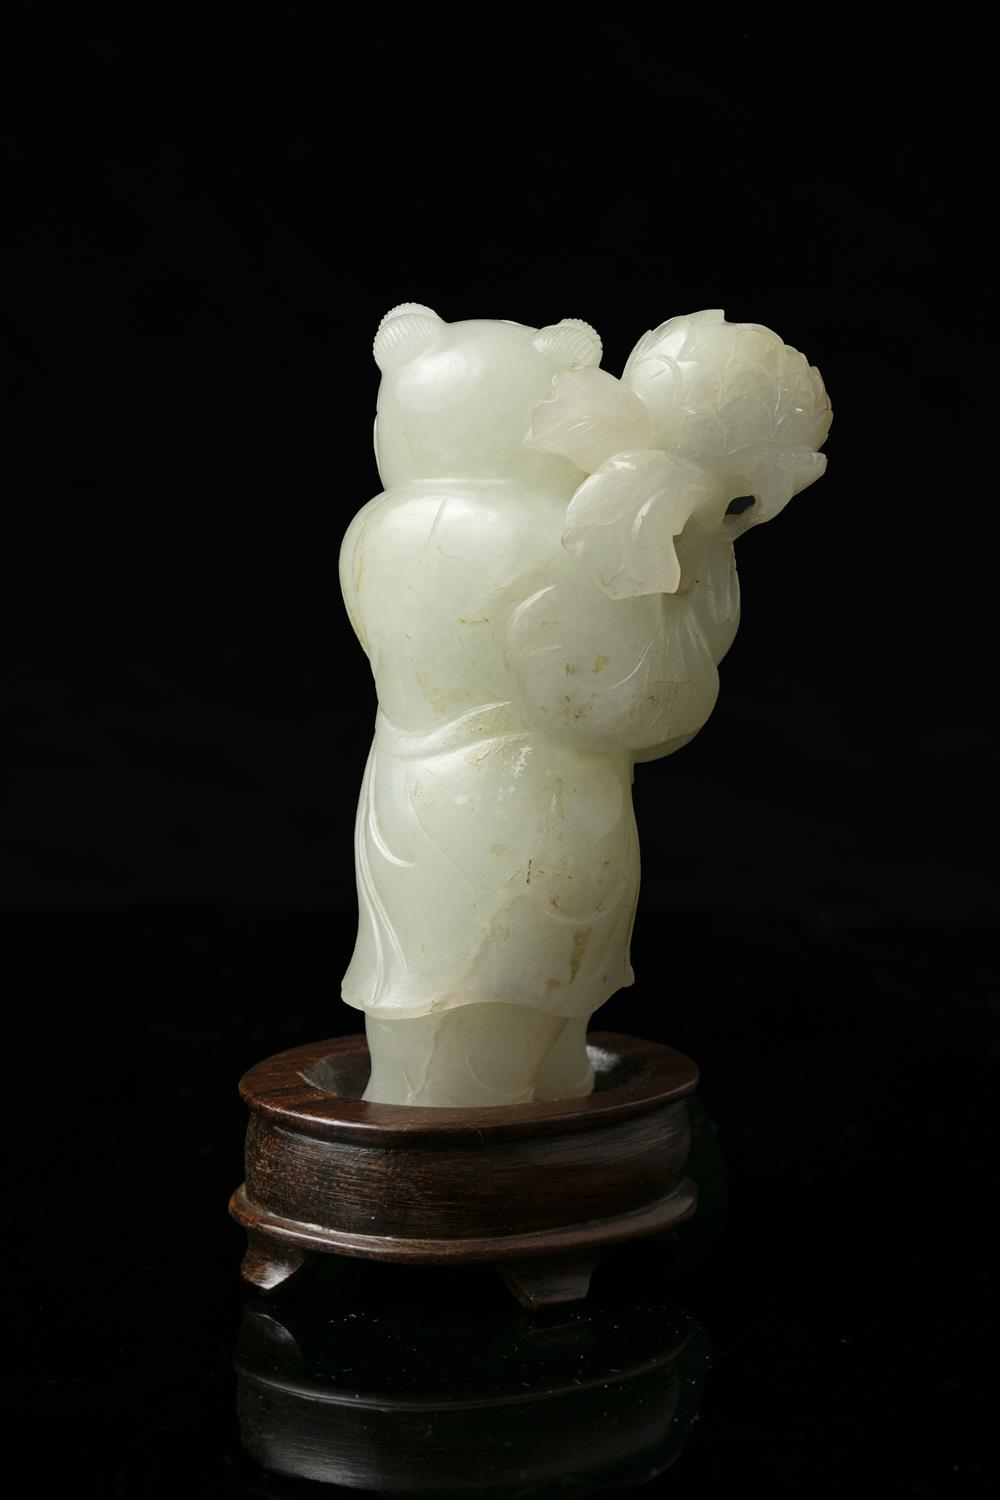 A WHITE JADE FIGURE OF A STANDING BOY WITH A LOTUS FLOWER VASE China, Qing Dynasty, 19th century - Image 13 of 14